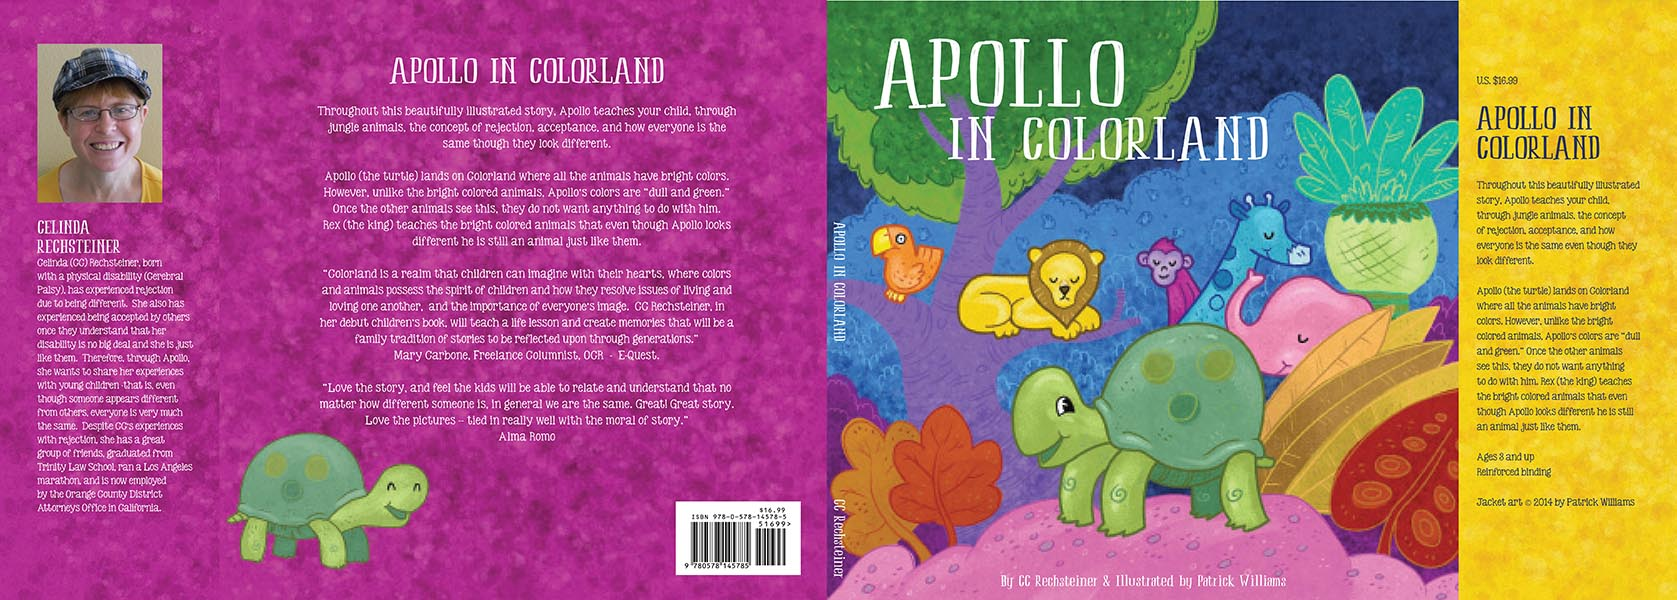 Apollo in Colorland dust cover